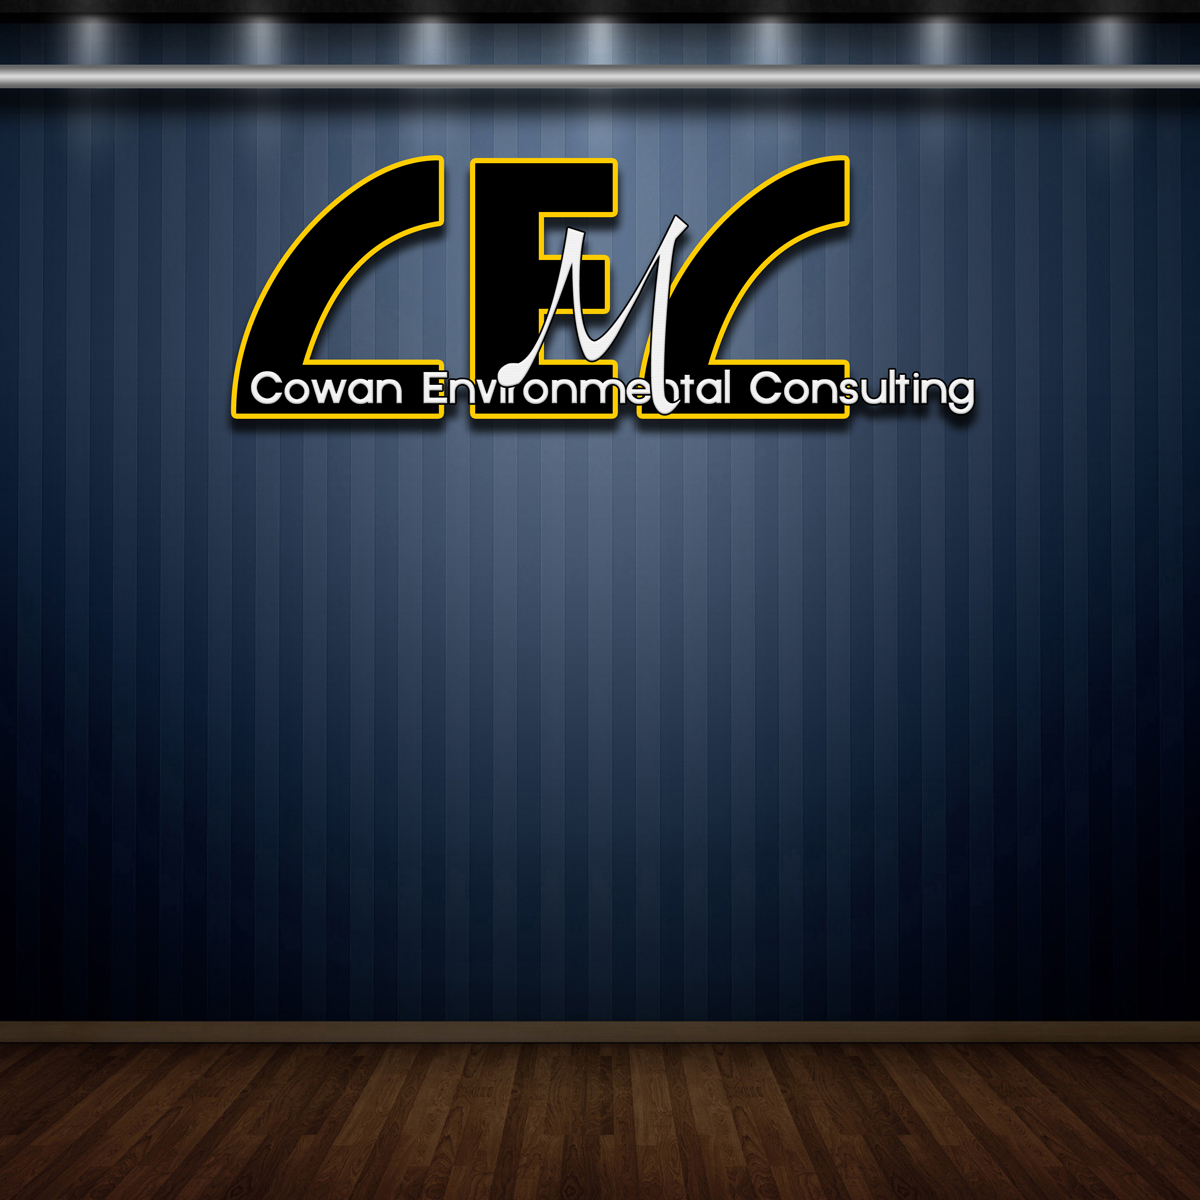 Logo Design by MITUCA ANDREI - Entry No. 11 in the Logo Design Contest Fun Logo Design for Cowan Environmental Consulting.